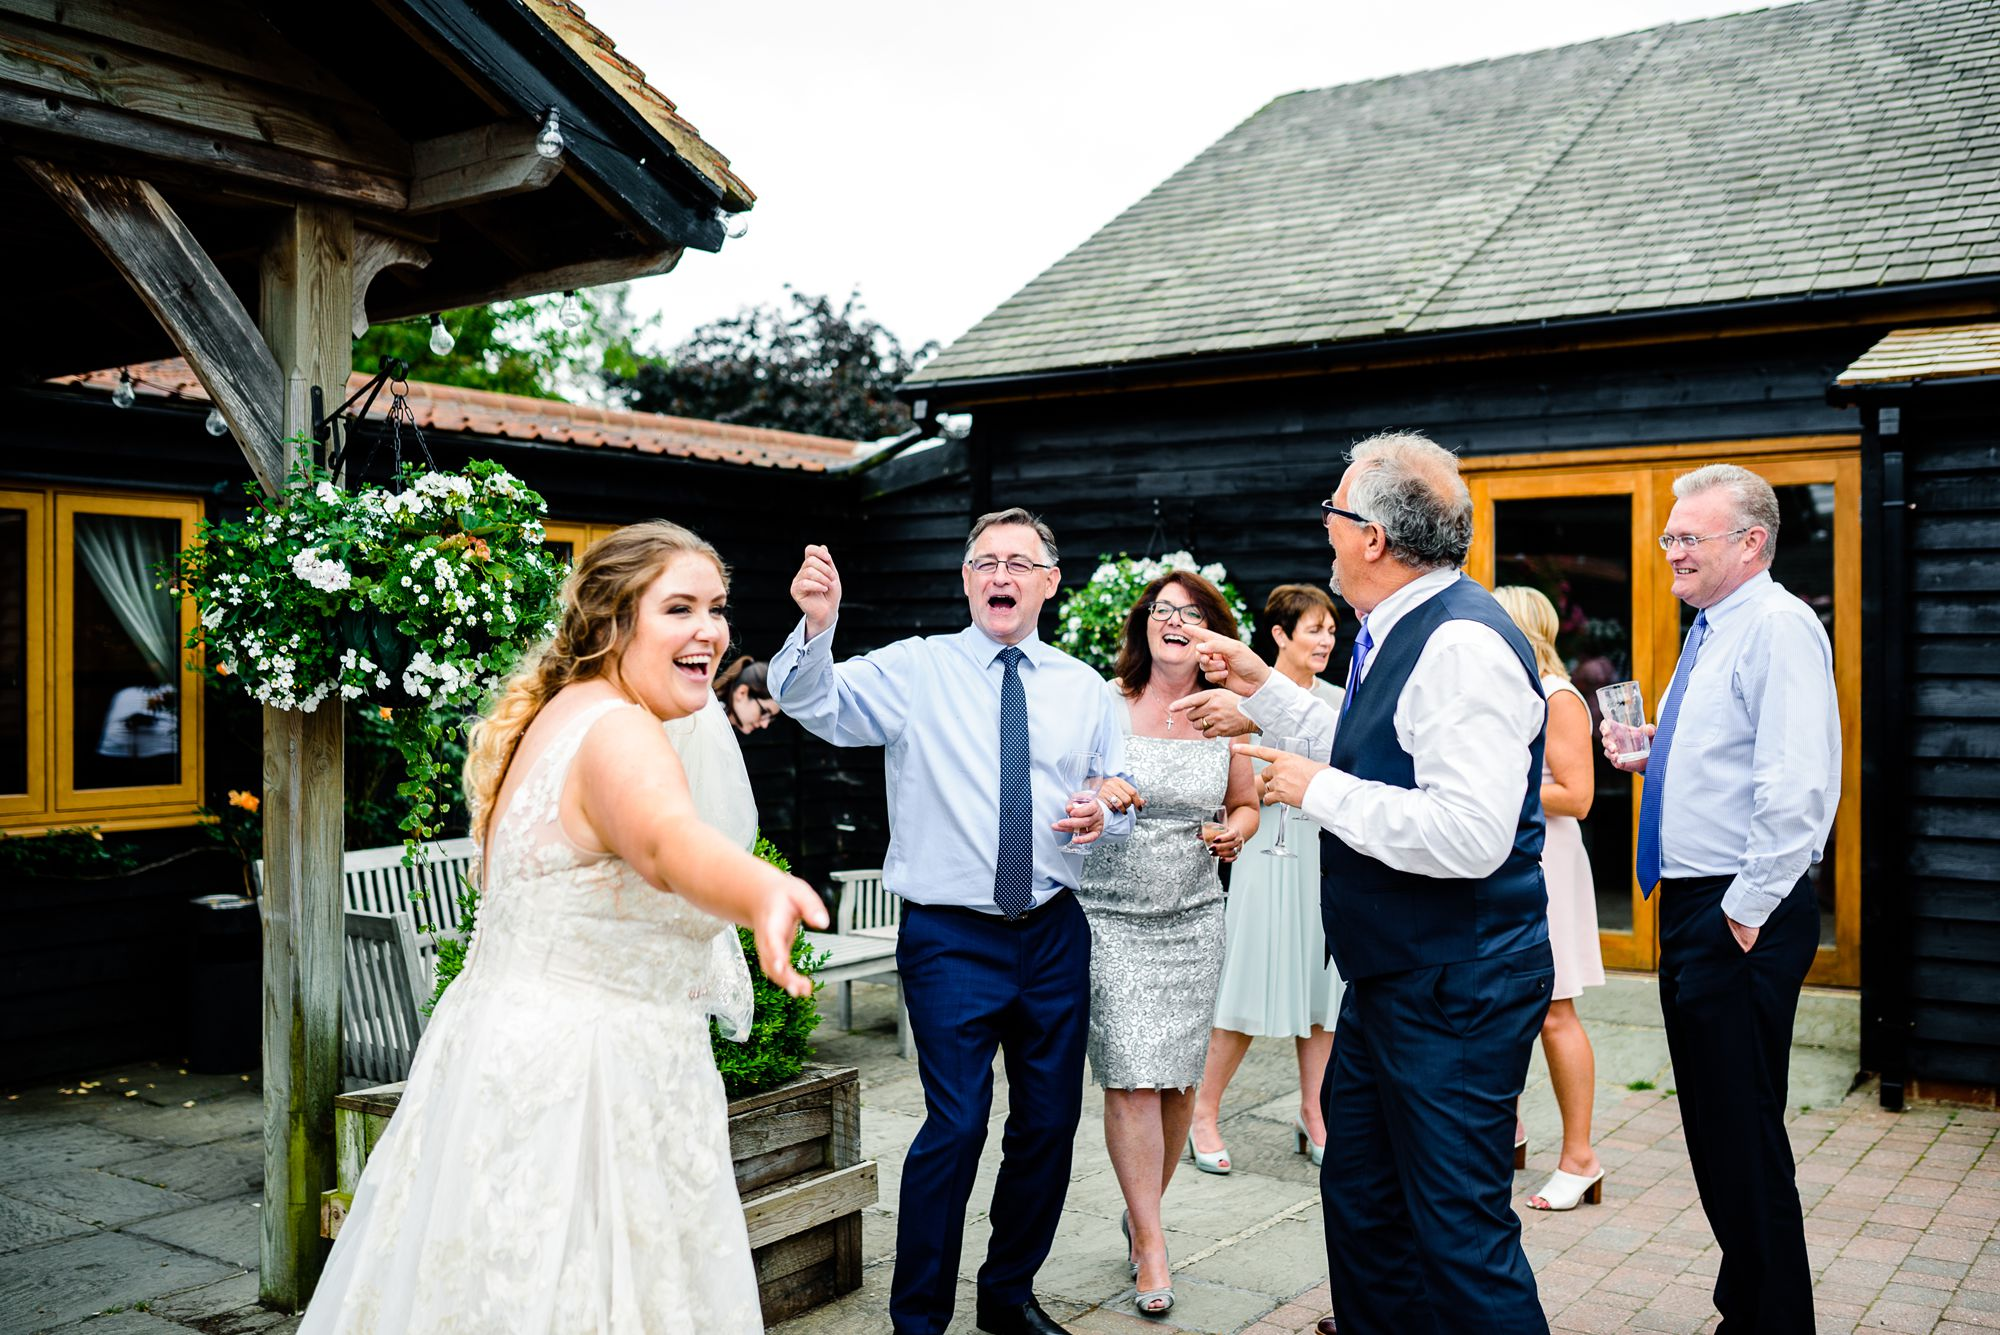 Maidens-Barn-Essex-Wedding-Photographer_0101.jpg